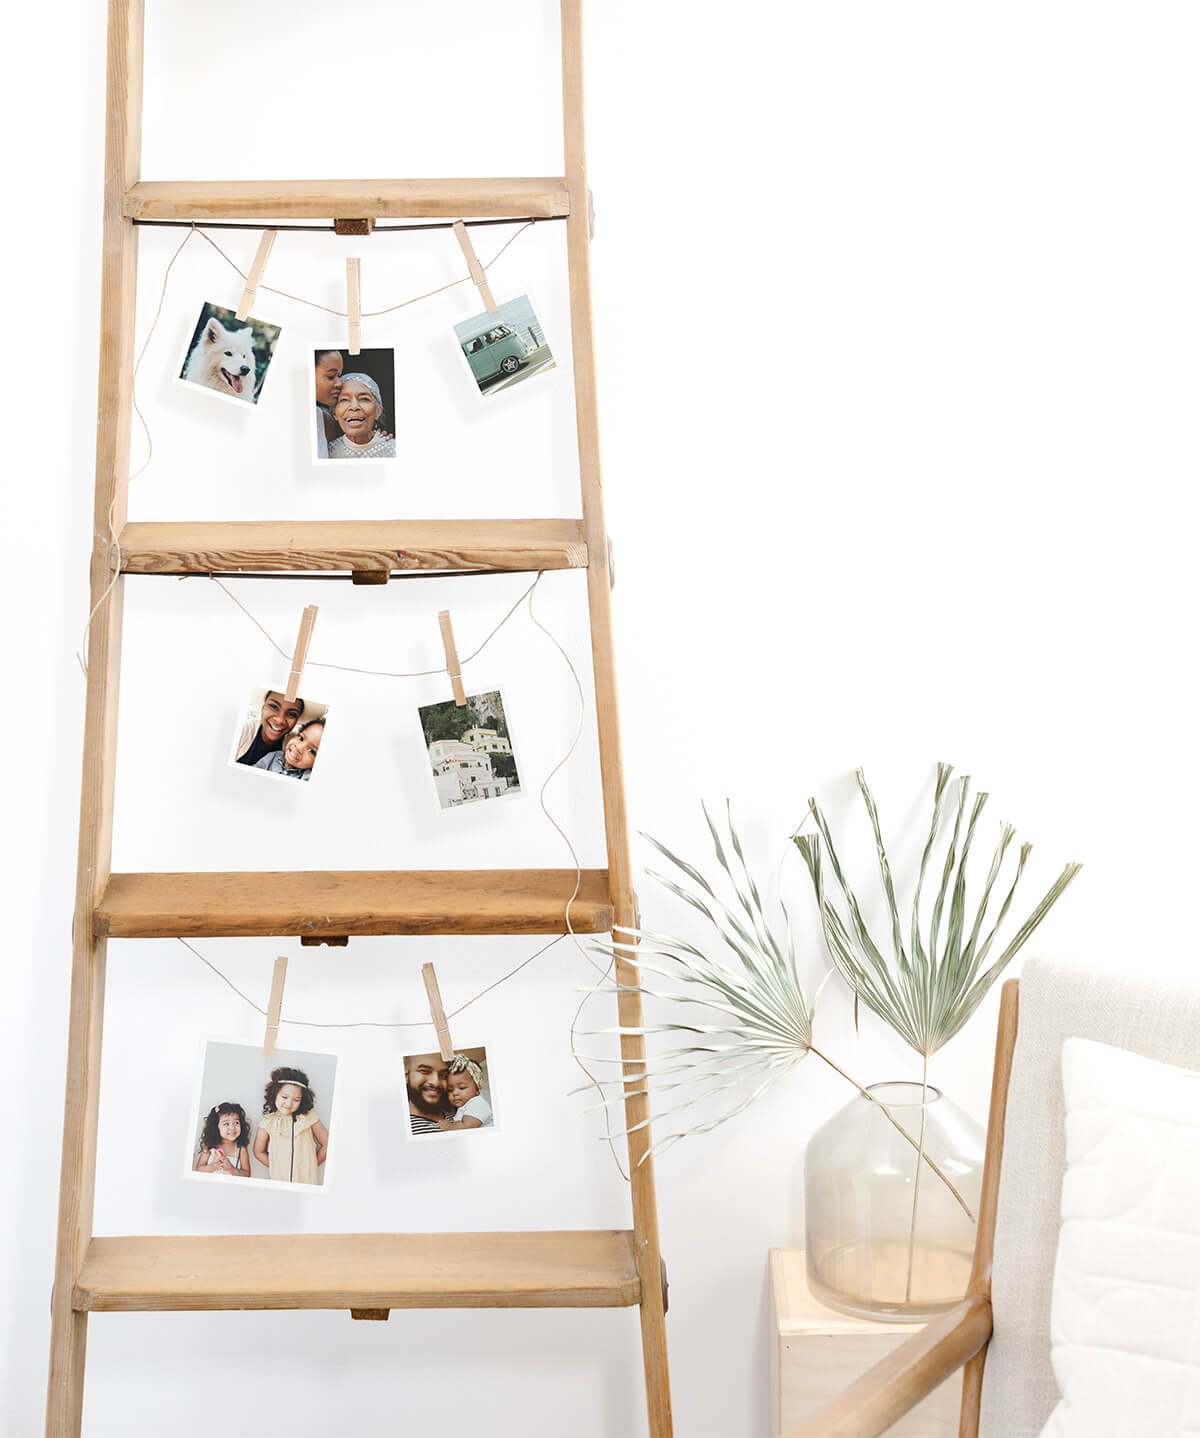 Photo prints hanging from rungs of wooden ladder